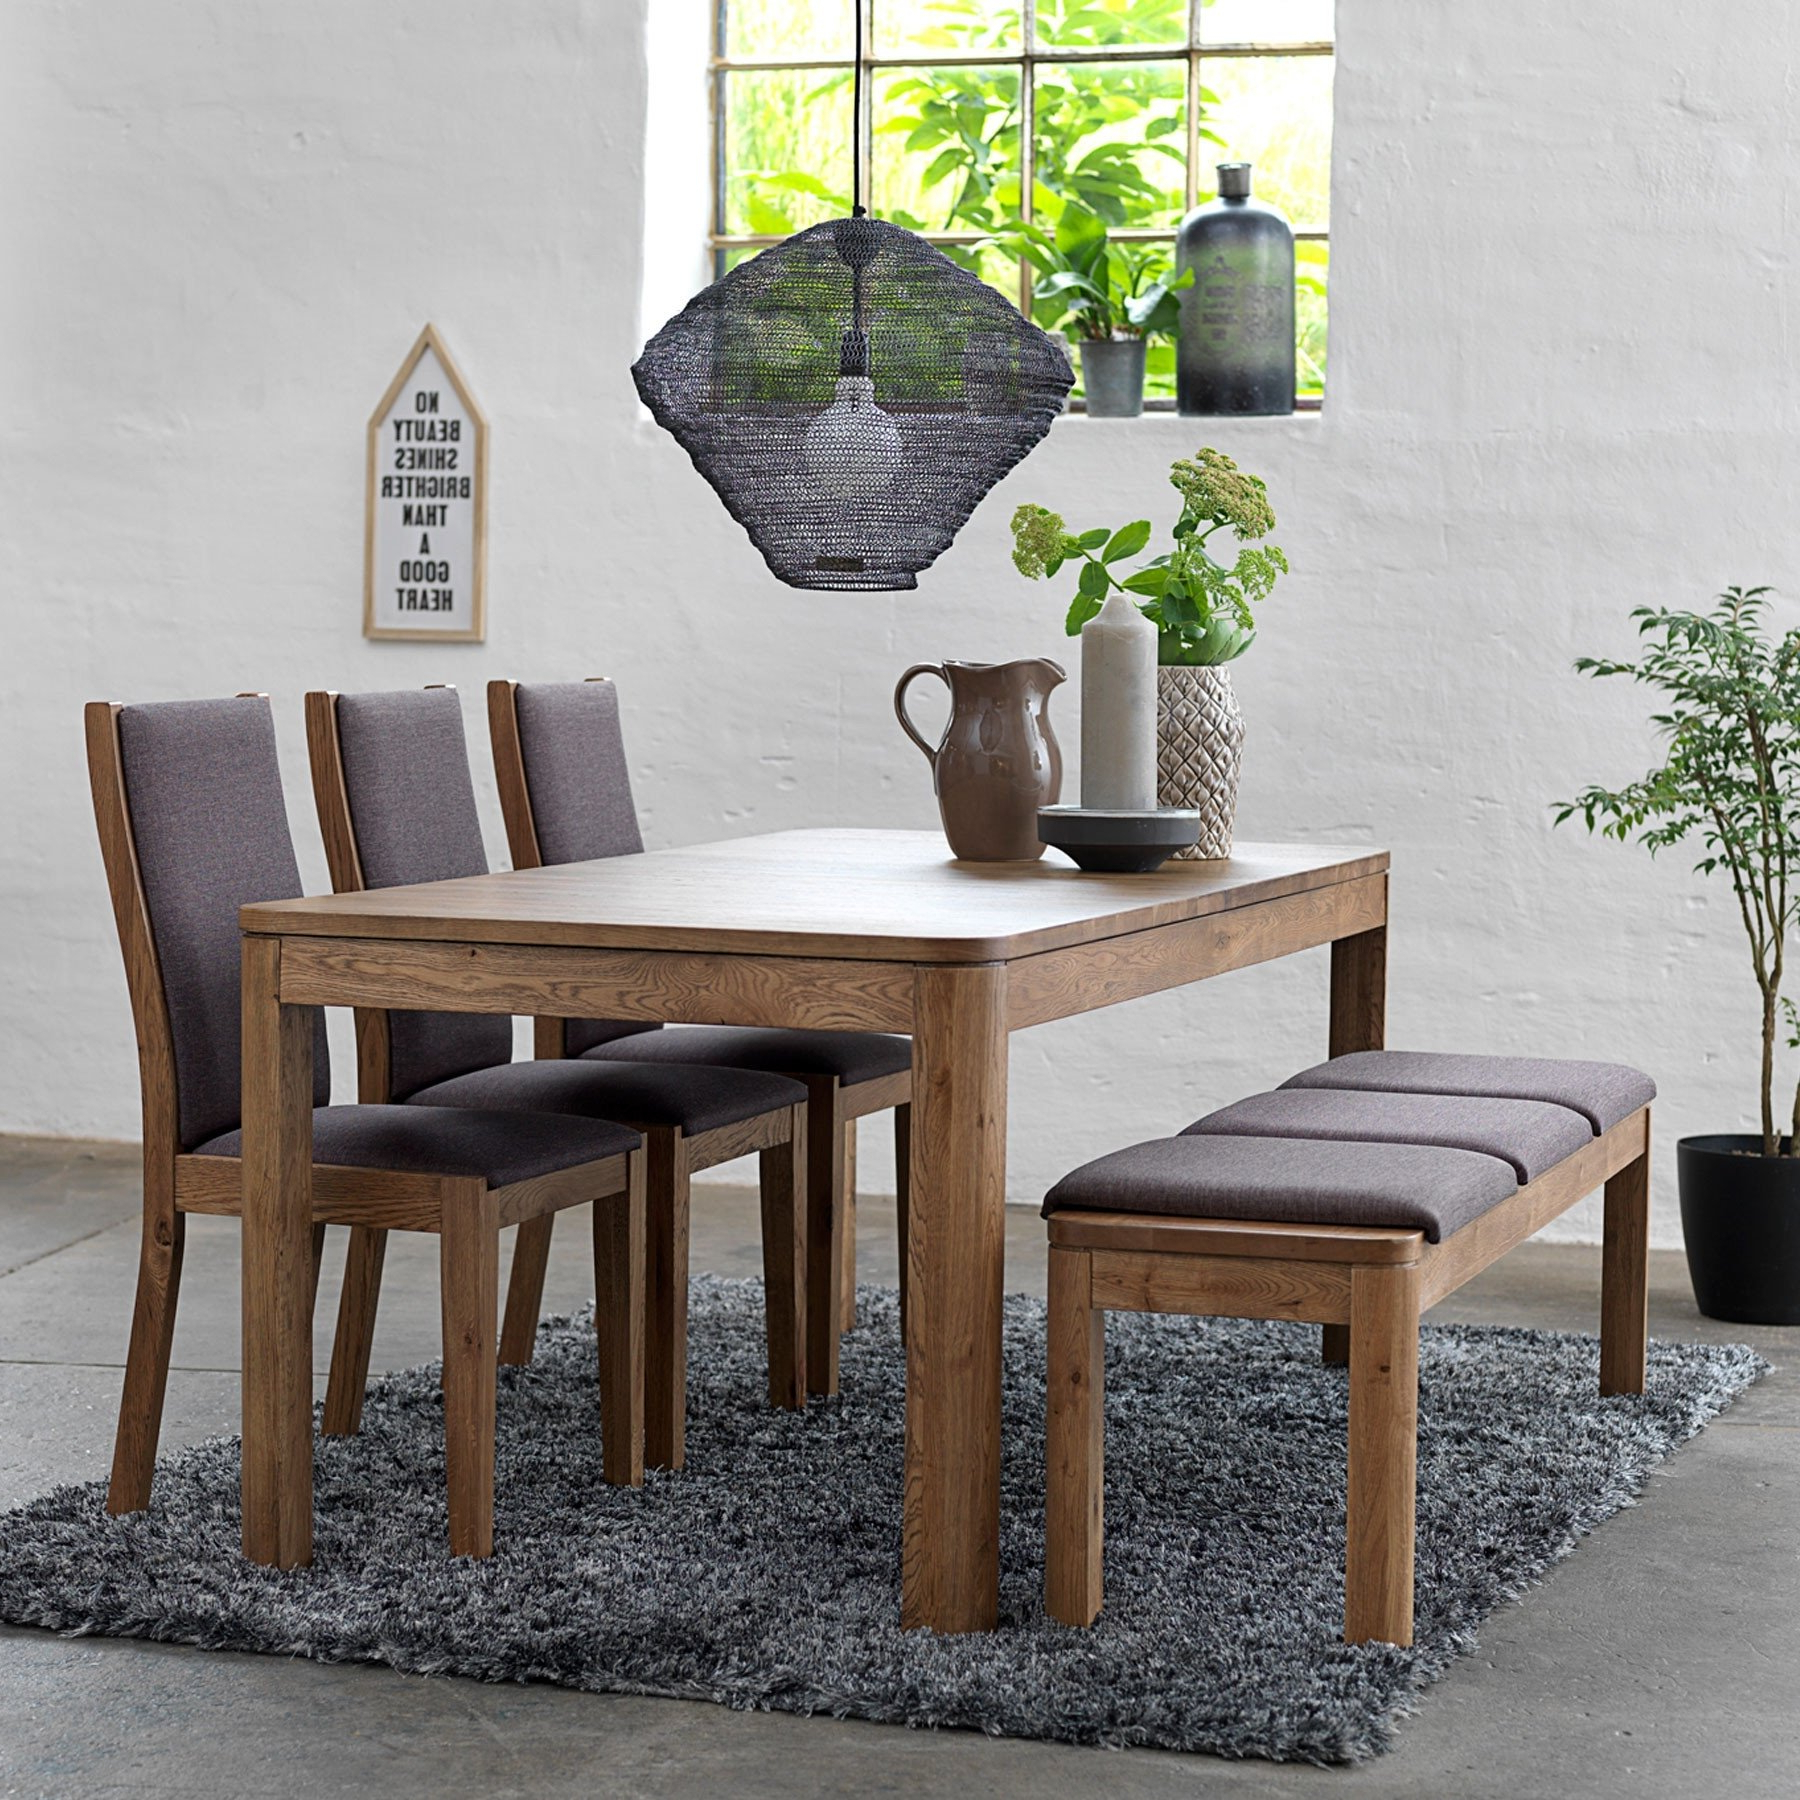 Most Recently Released Thick White Marble Slab Dining Tables With Weathered Grey Finish With 50+ Dining Table With Bench You'll Love In 2020 – Visual Hunt (View 14 of 30)